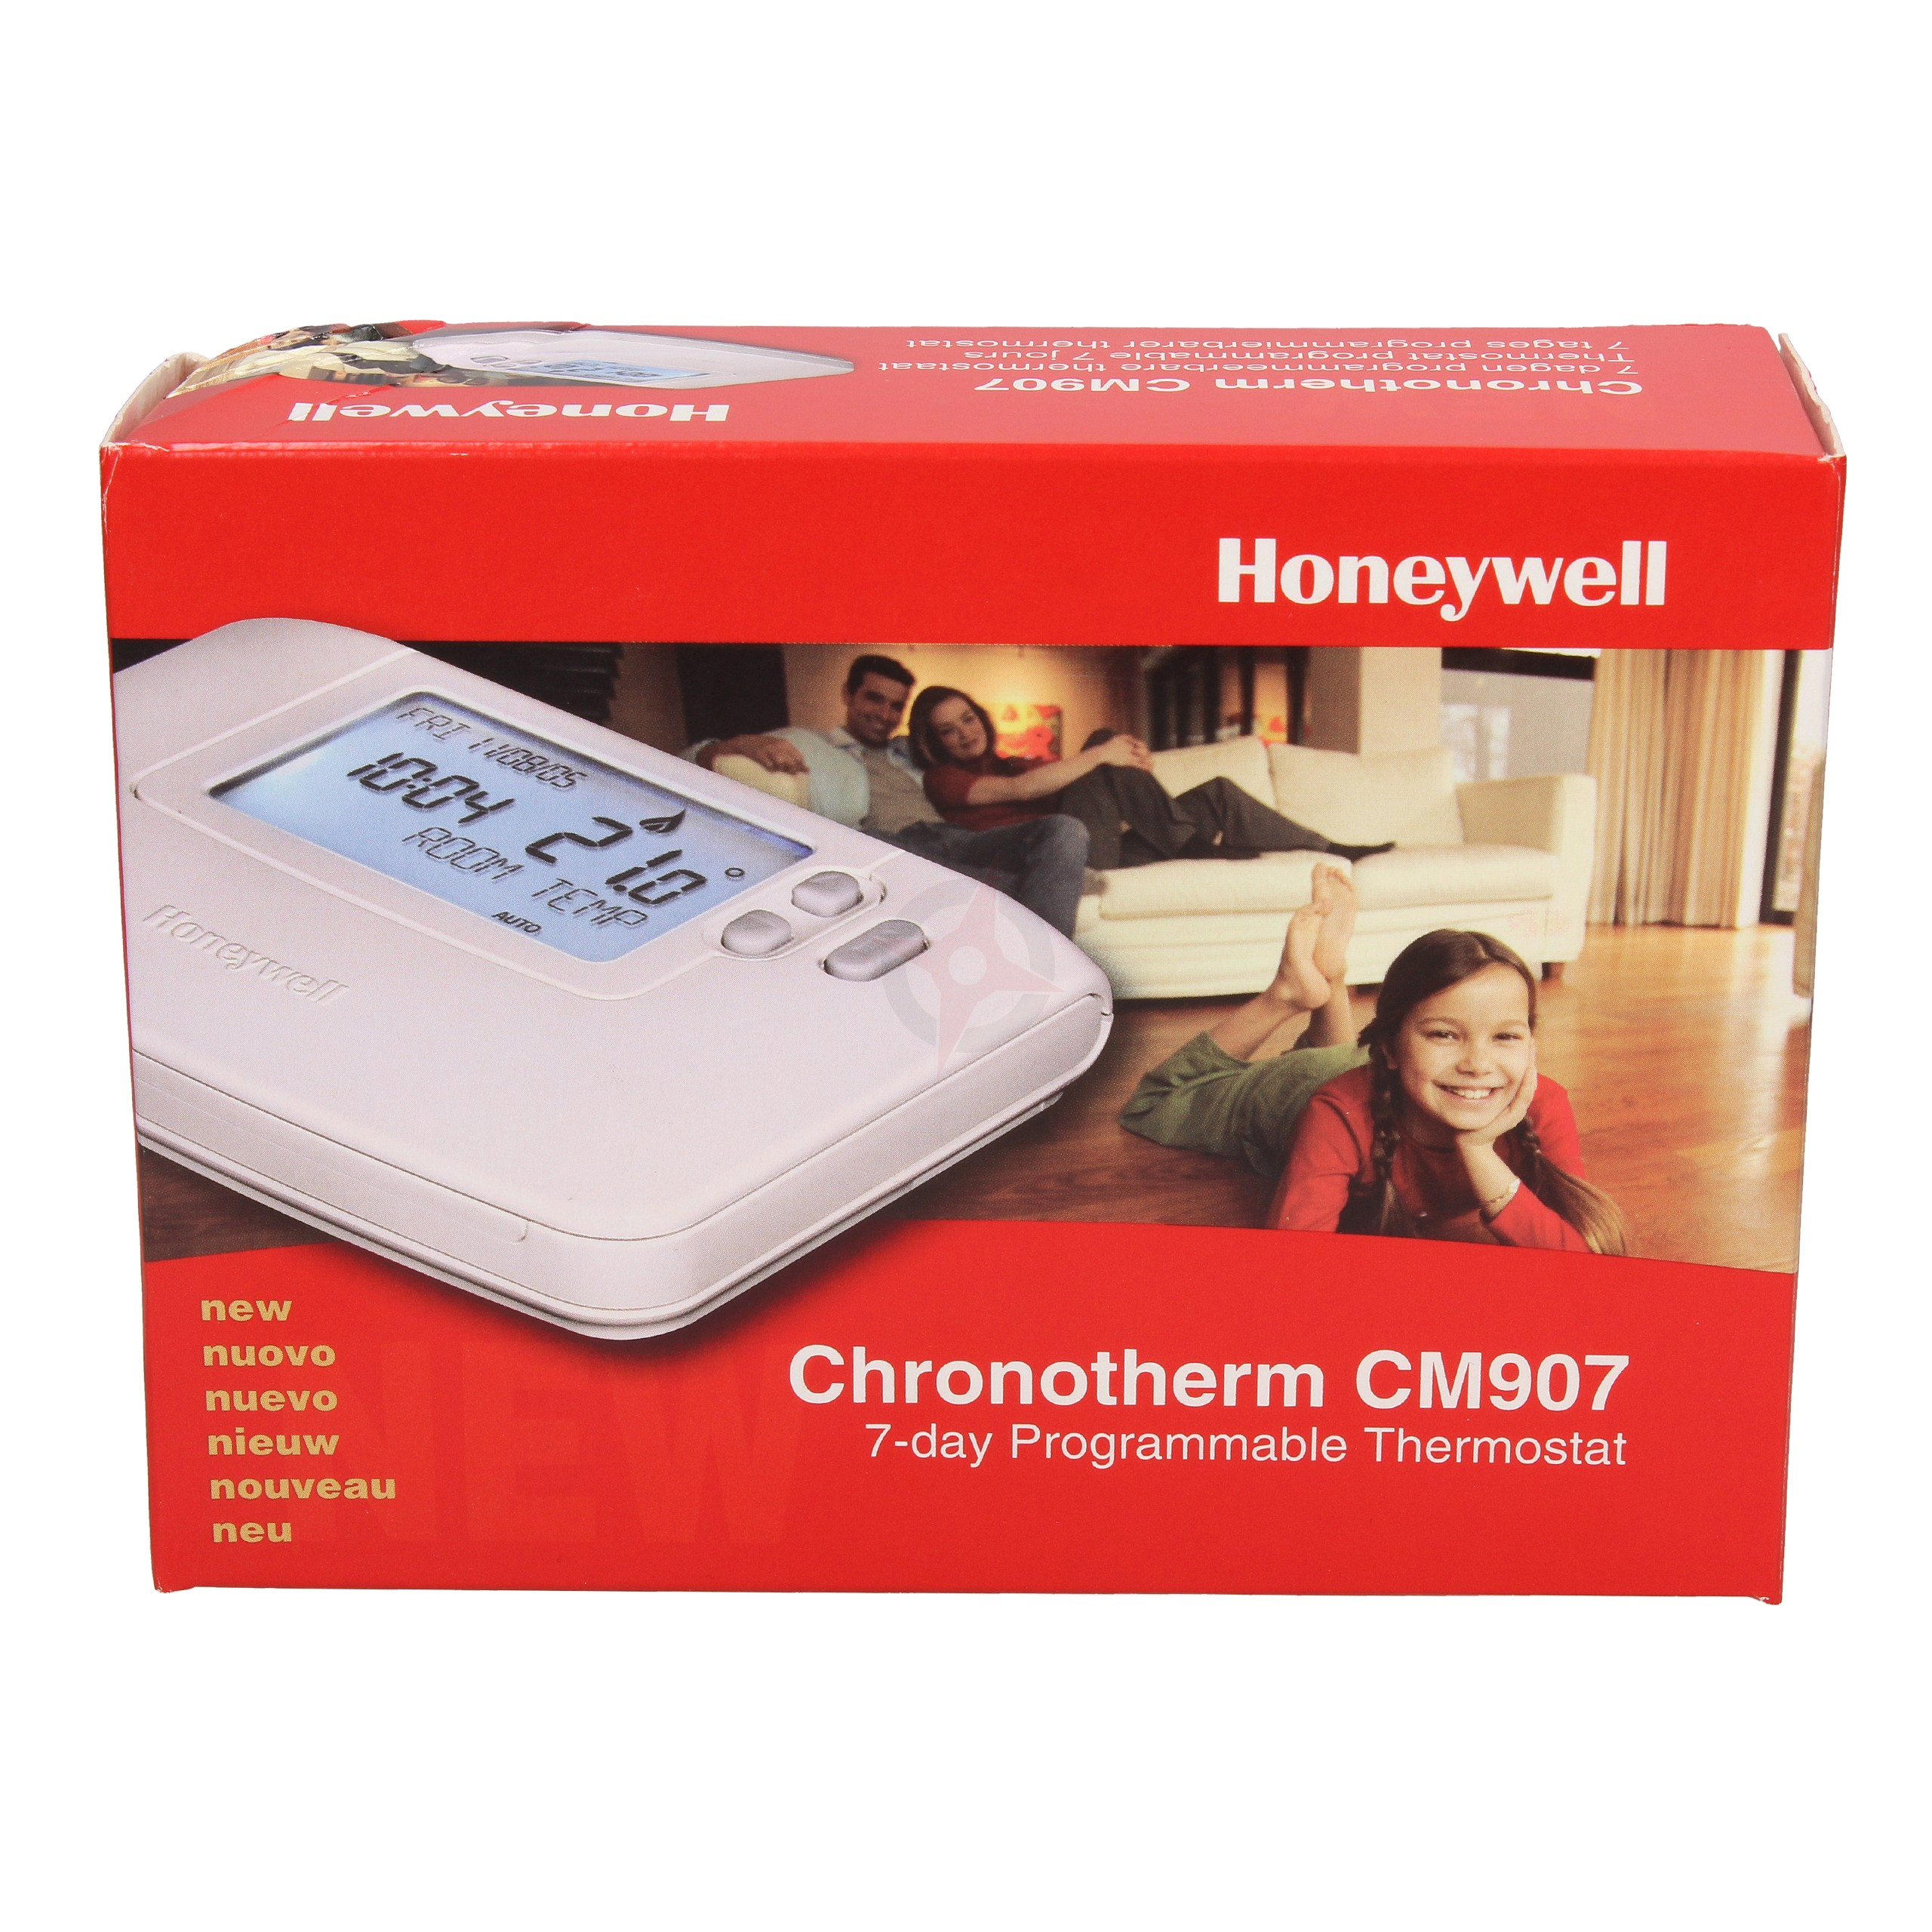 Honeywell 7 Day Programmable Thermostat CM907